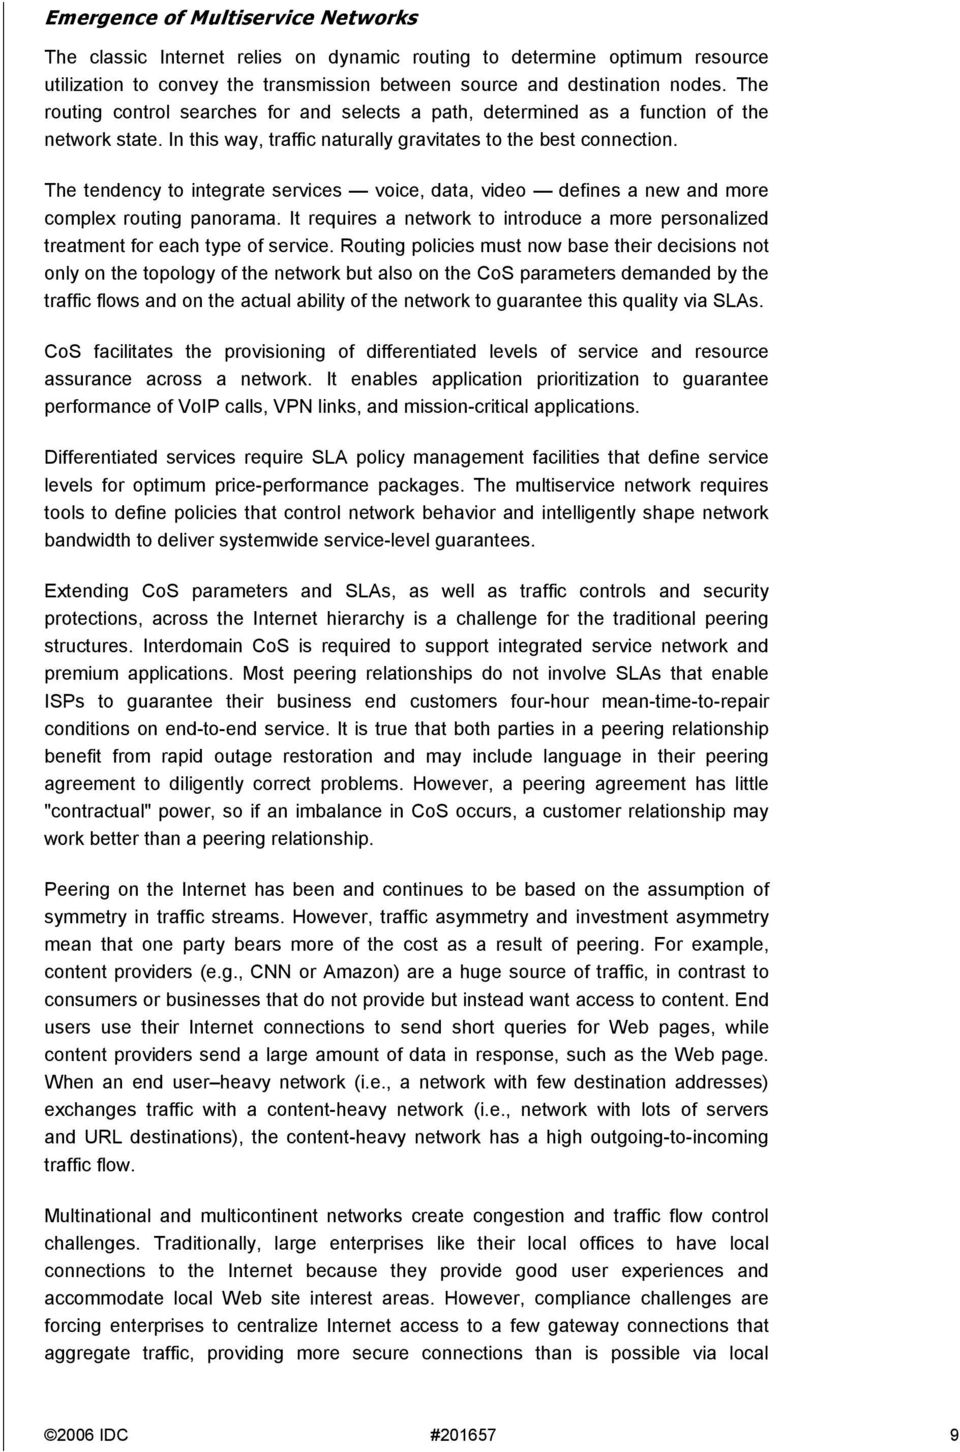 The tendency to integrate services voice, data, video defines a new and more complex routing panorama. It requires a network to introduce a more personalized treatment for each type of service.